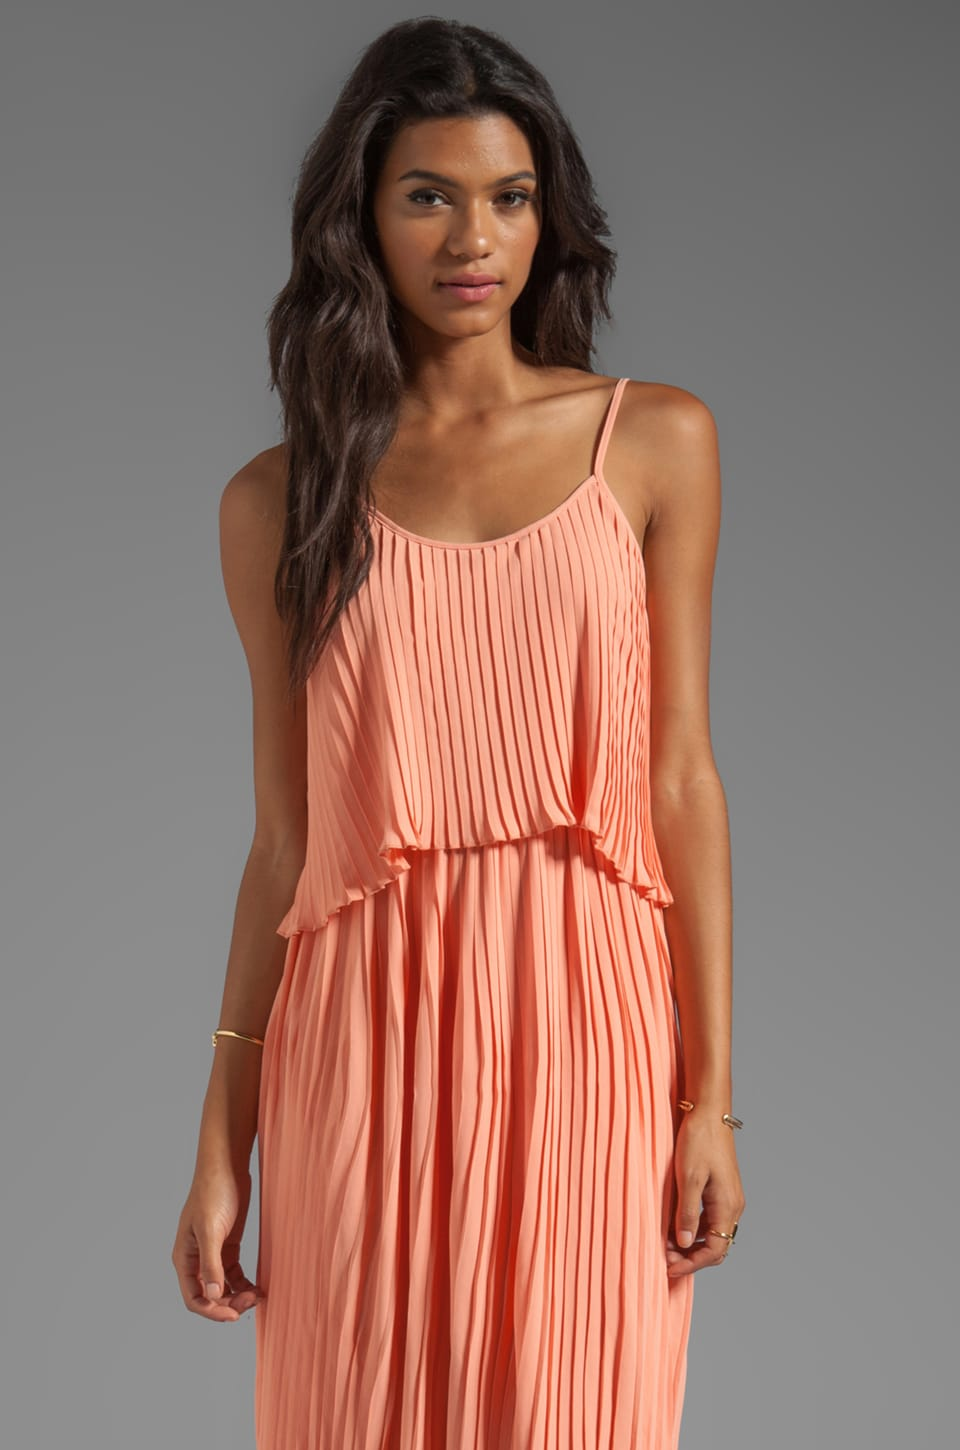 Lovers + Friends California Girl Dress in Coral